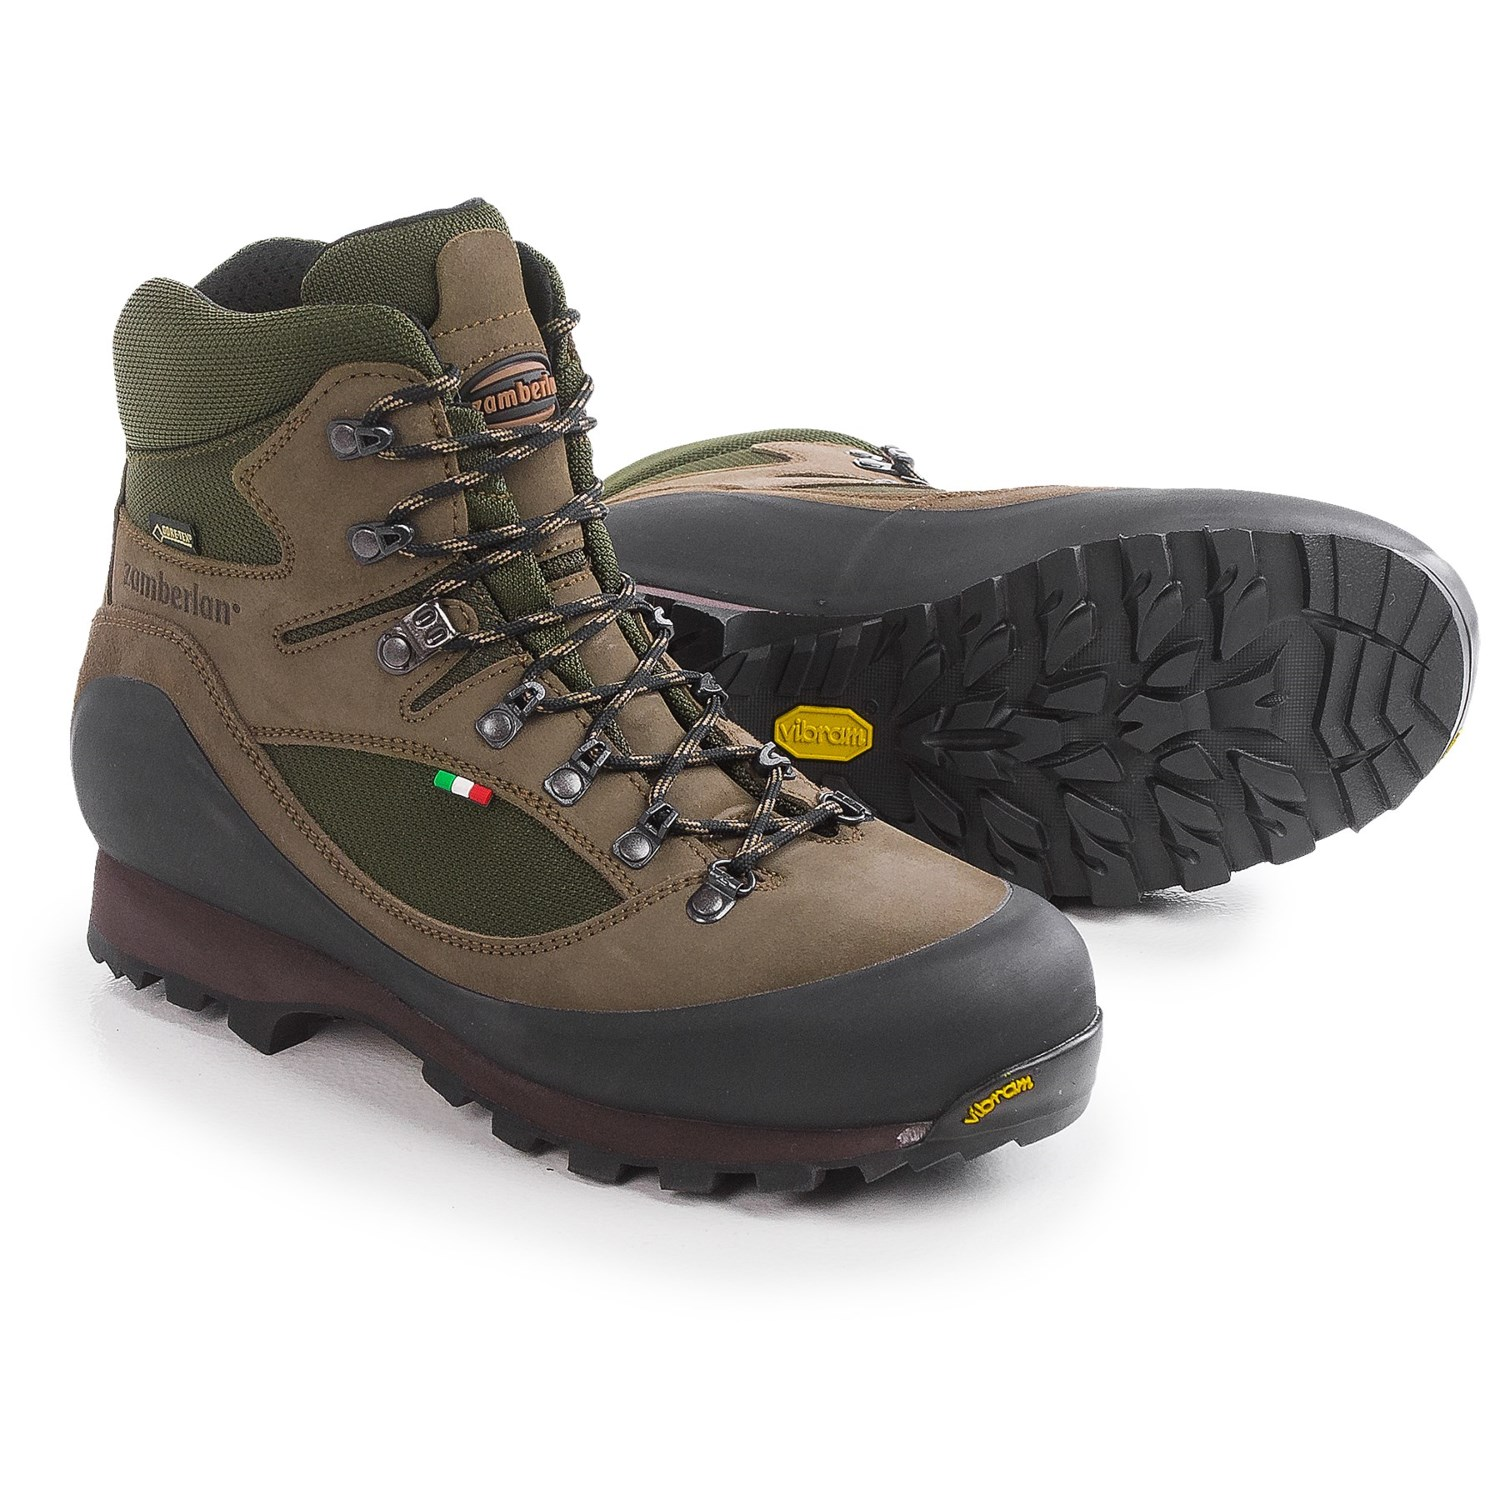 Zamberlan Sherpa Pro Gore Tex 174 Rr Hunting Boots For Men